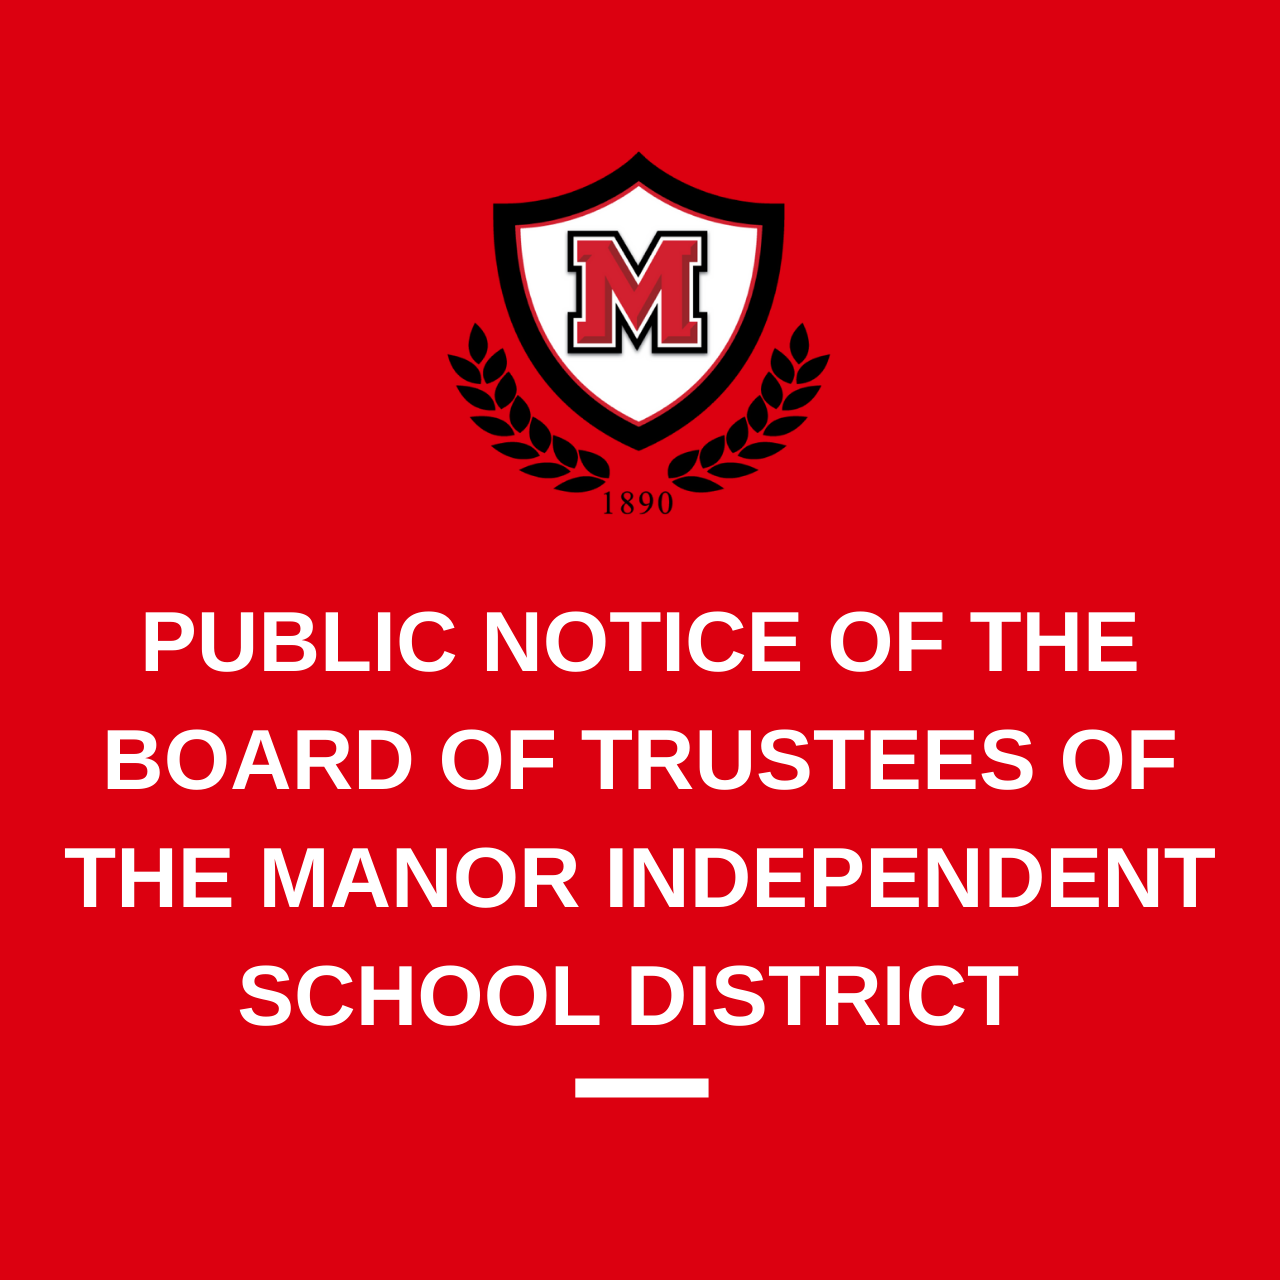 Public Notice of the Board of Trustees of the Manor Independent School District